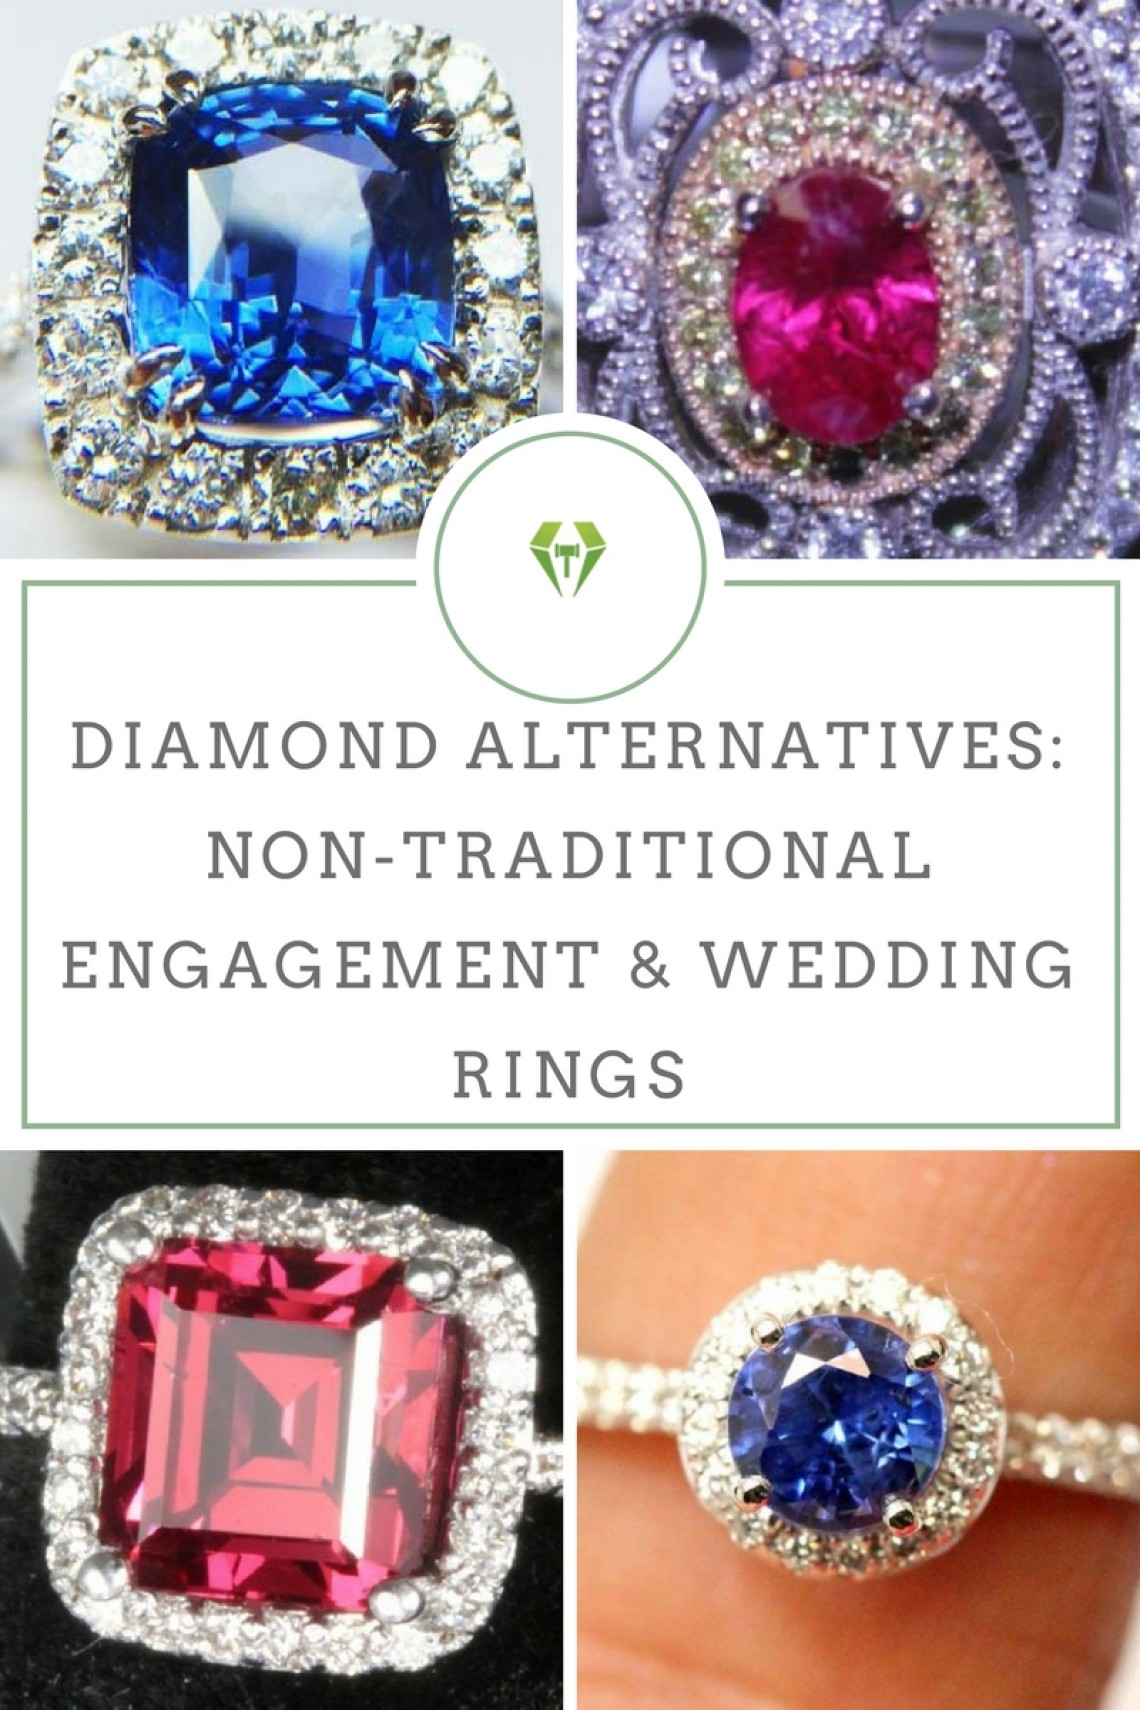 Diamond Alternatives Non-Traditional Engagement  Wedding Rings